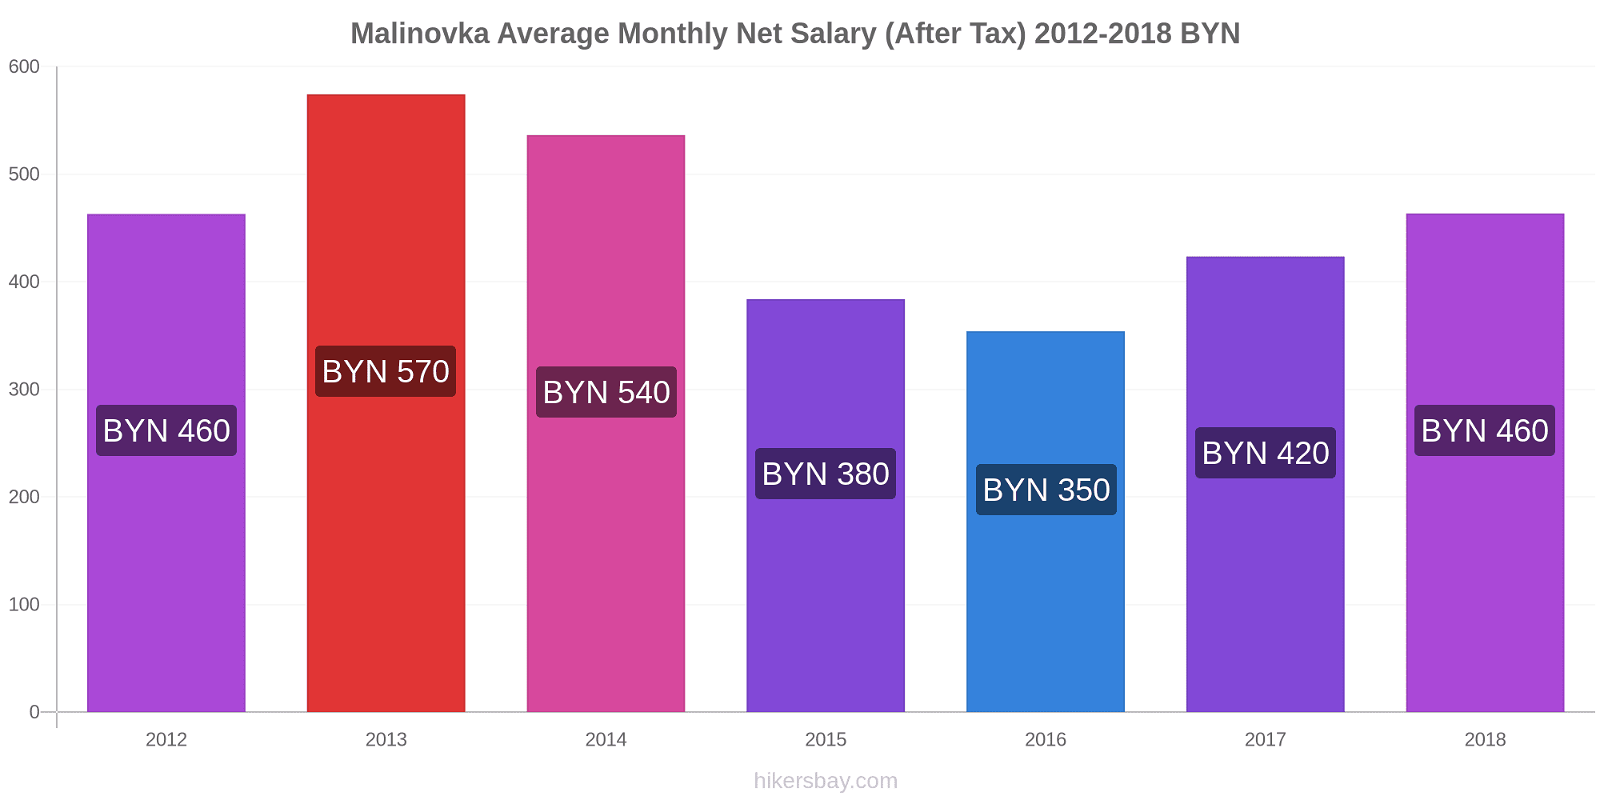 Malinovka price changes Average Monthly Net Salary (After Tax) hikersbay.com